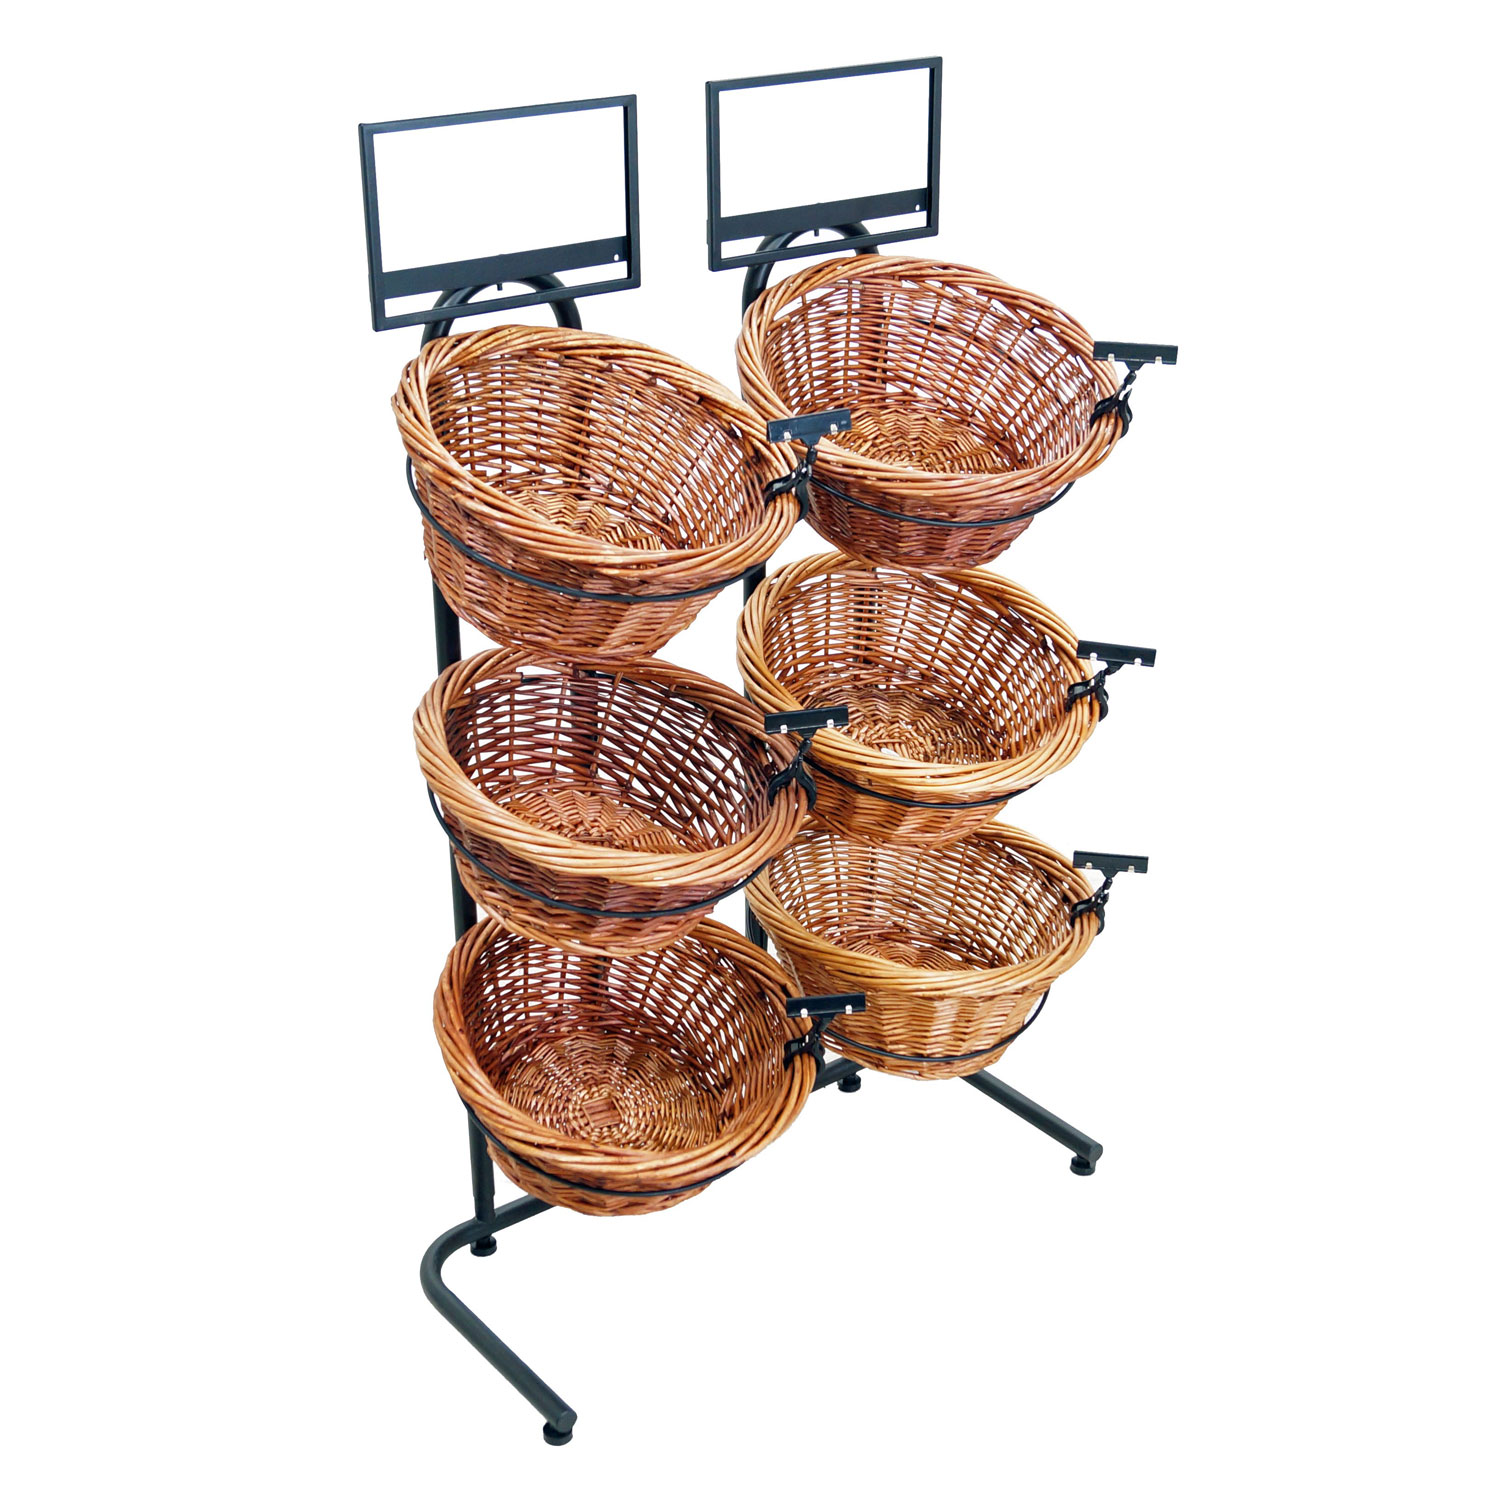 3 Tier Willow Basket Floor Display With 6 Round Baskets Sign Frame And Clip Included